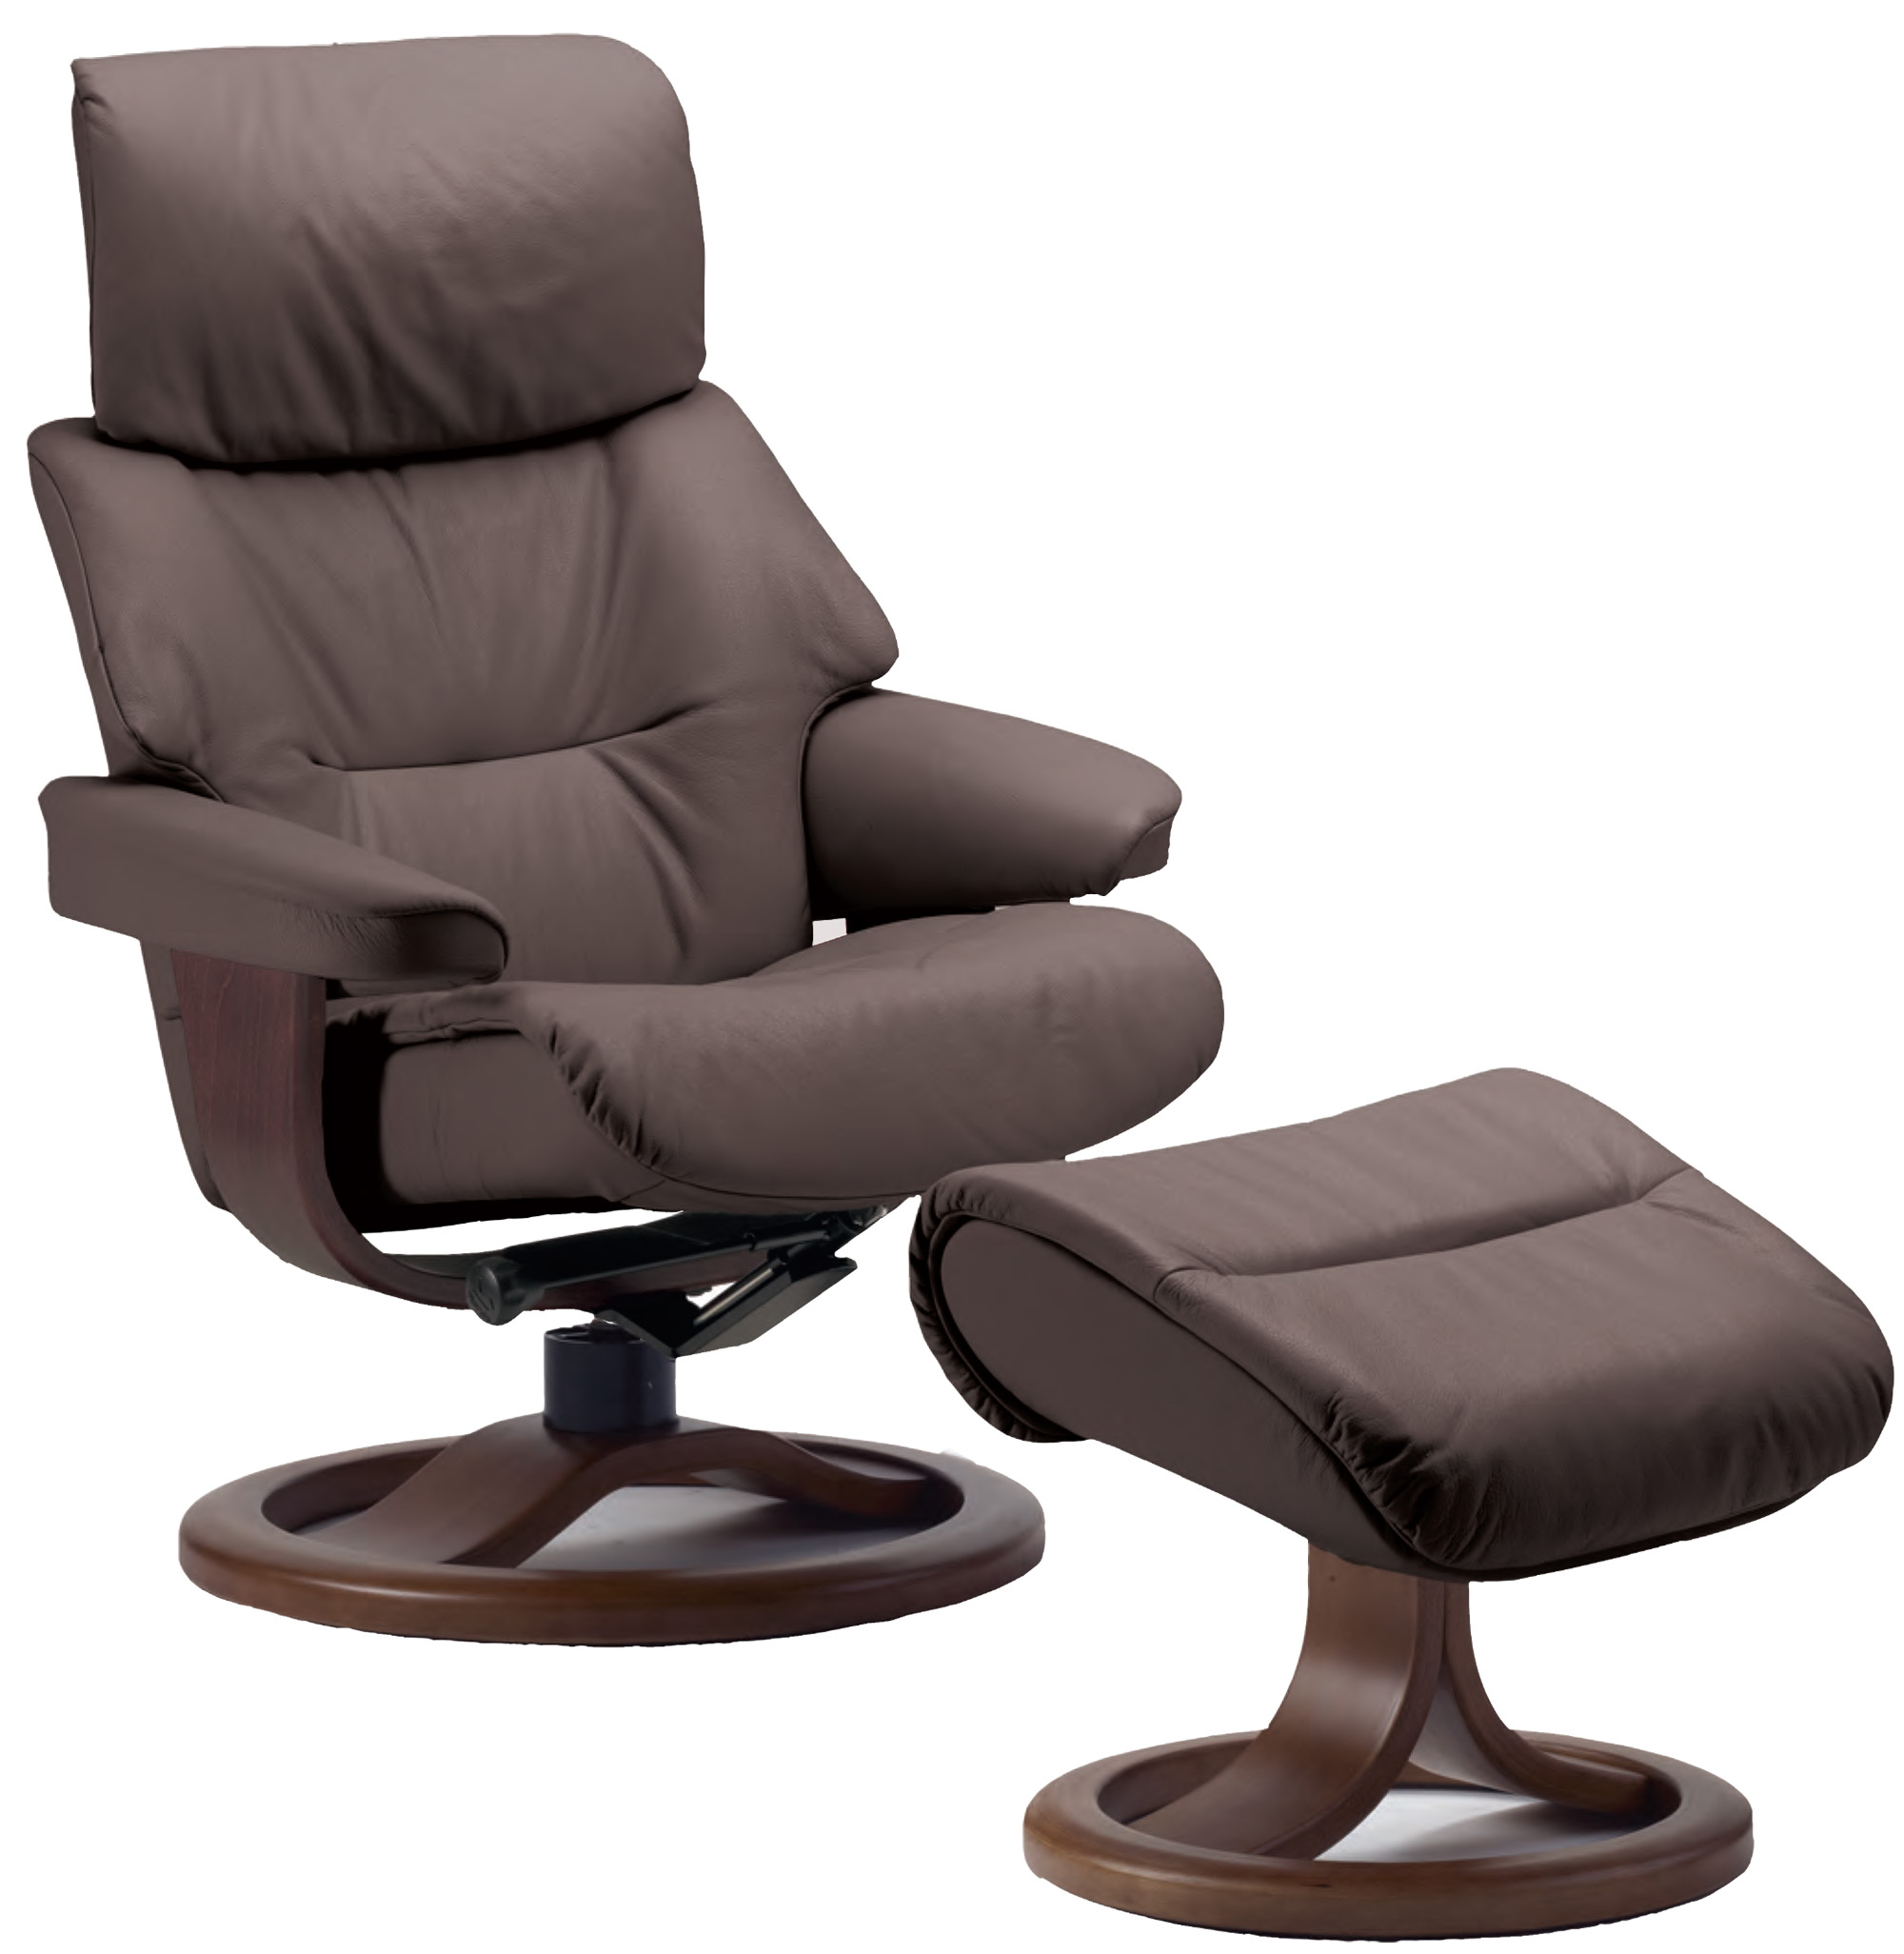 Attractive Fjords Grip Leather Ergonomic Recliner Chair And Ottoman Scandinavian  Lounger